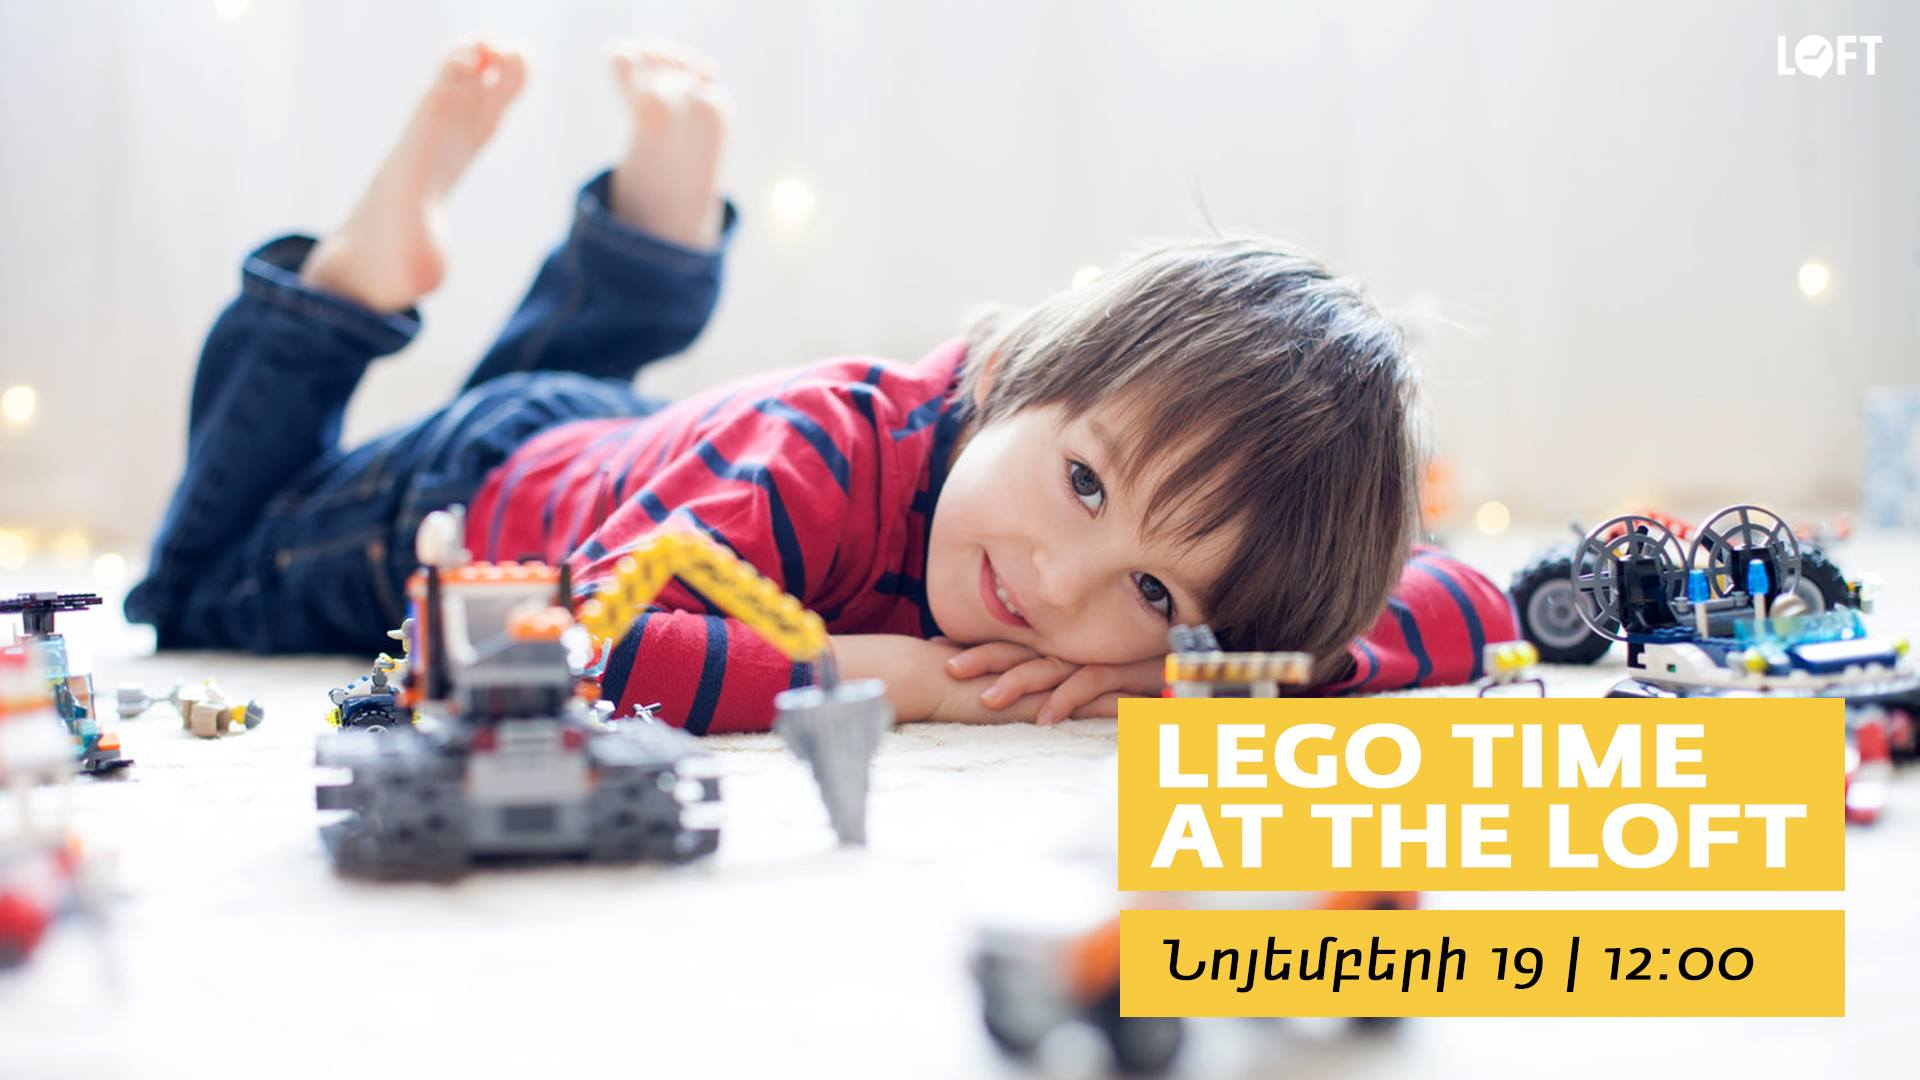 lego events